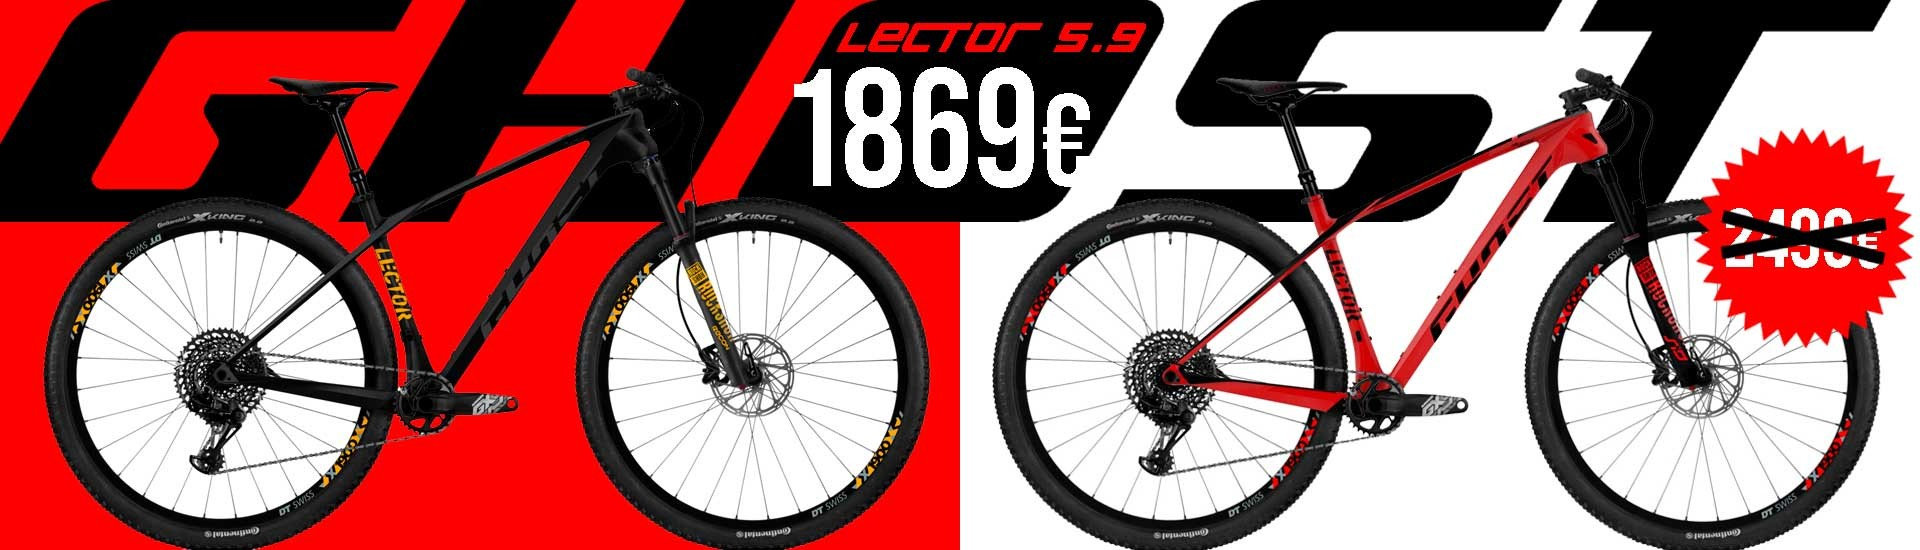 Oferta Ghost Lector 5.9 2019